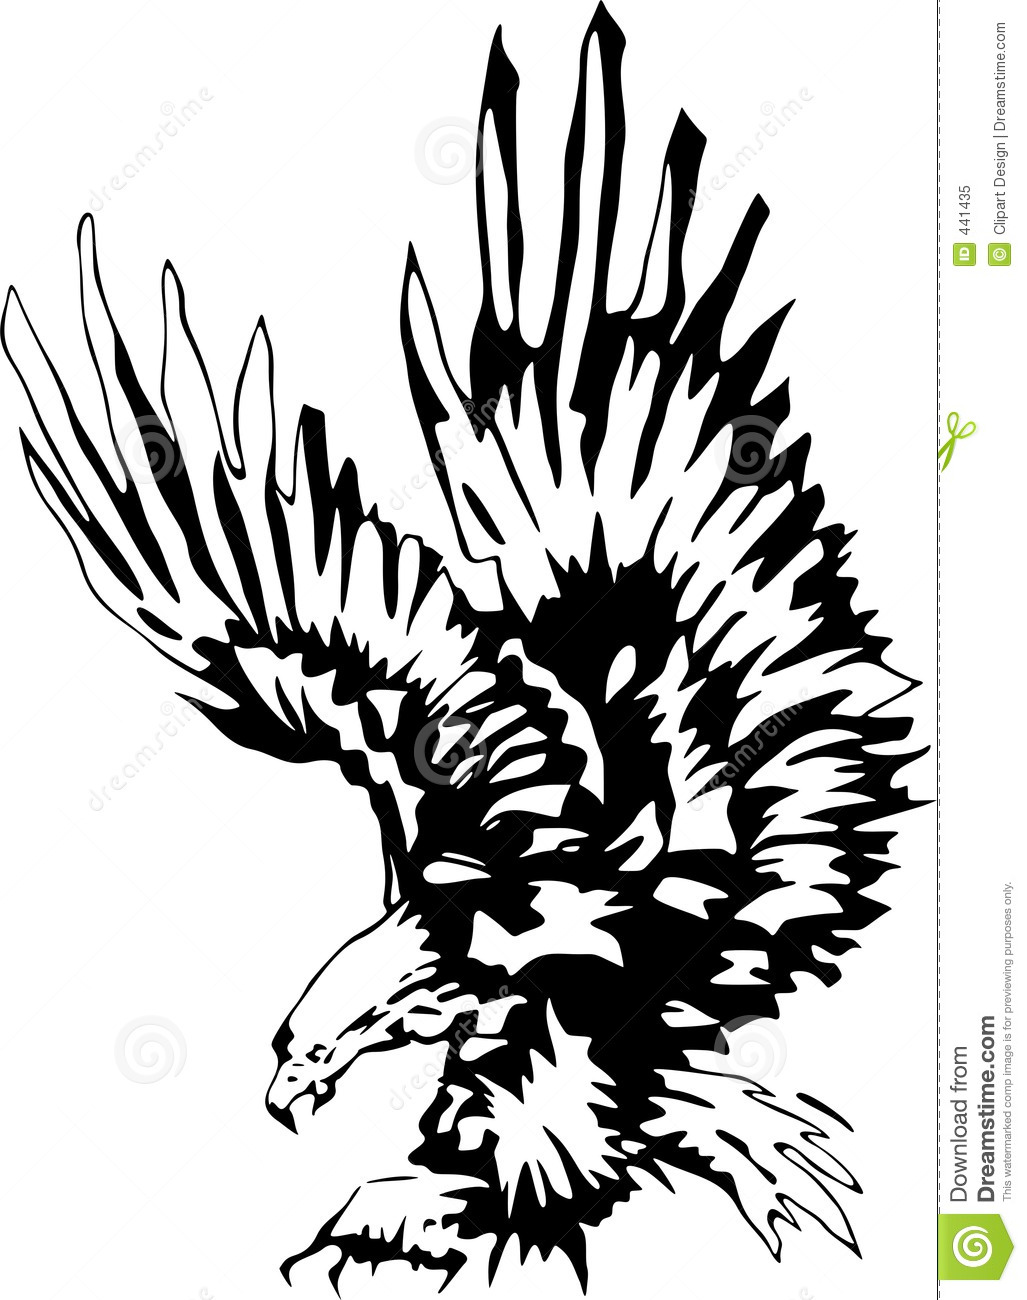 Attacking Eagle 3 stock illustration. Image of clip